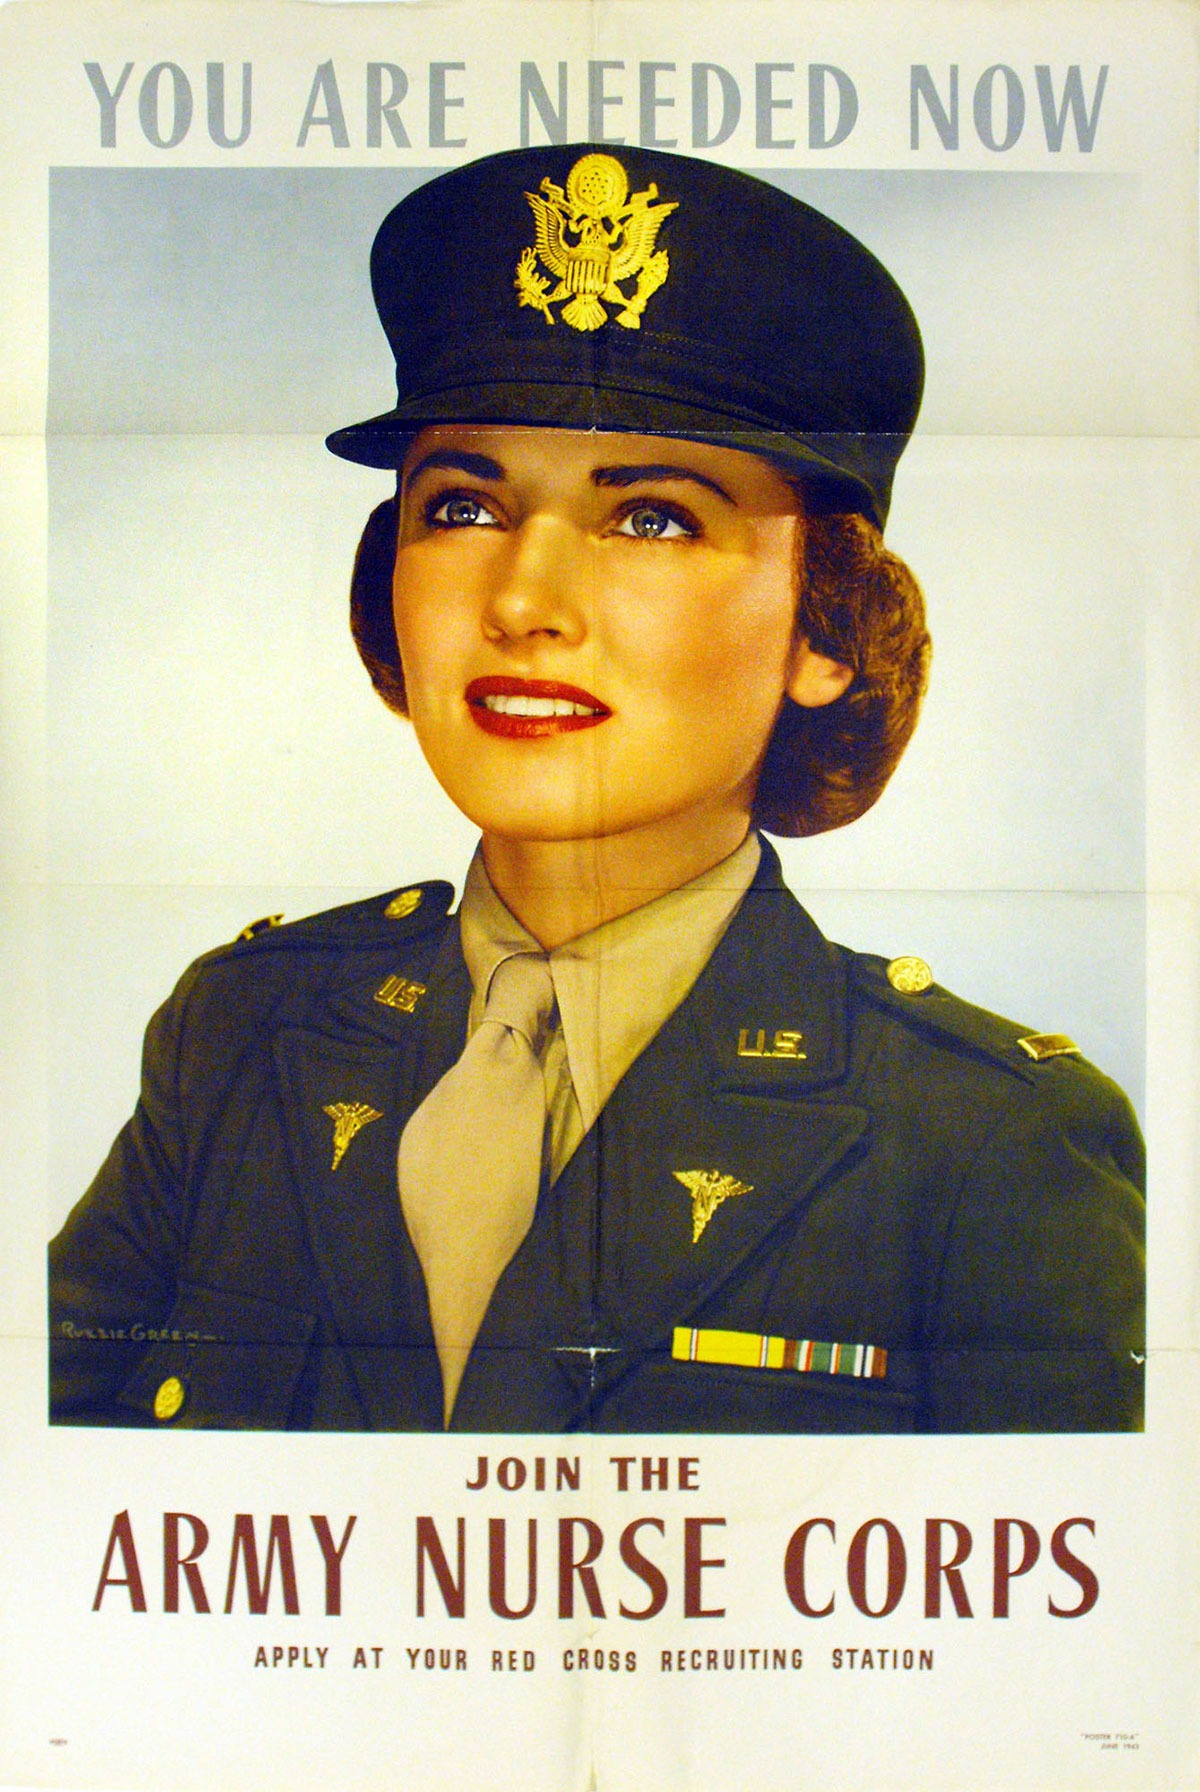 You are Needed Now, Join the Army Nurse Corps Poster